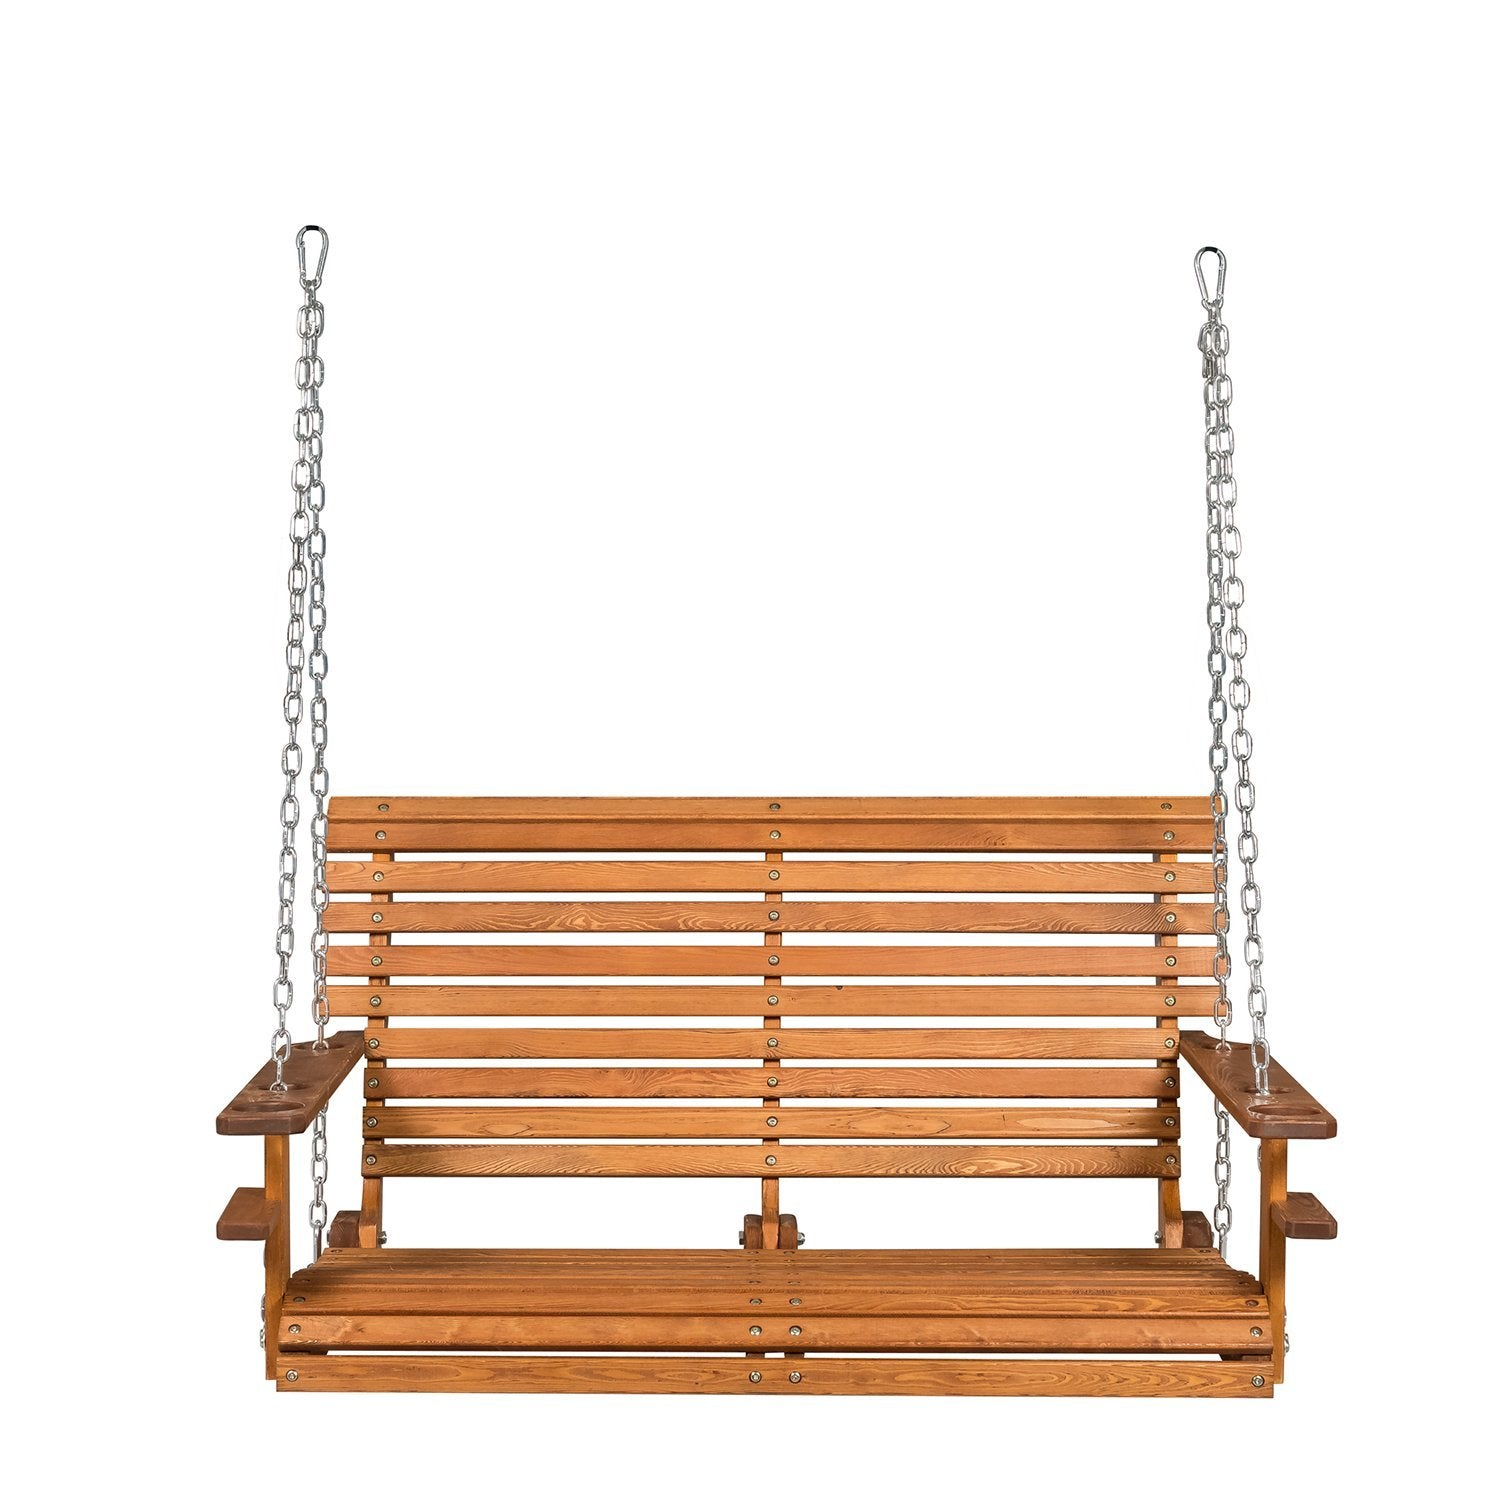 for deluxe wooden main patio sunnydaze ls yard person burnt orange cushions wsn swing deck with p or